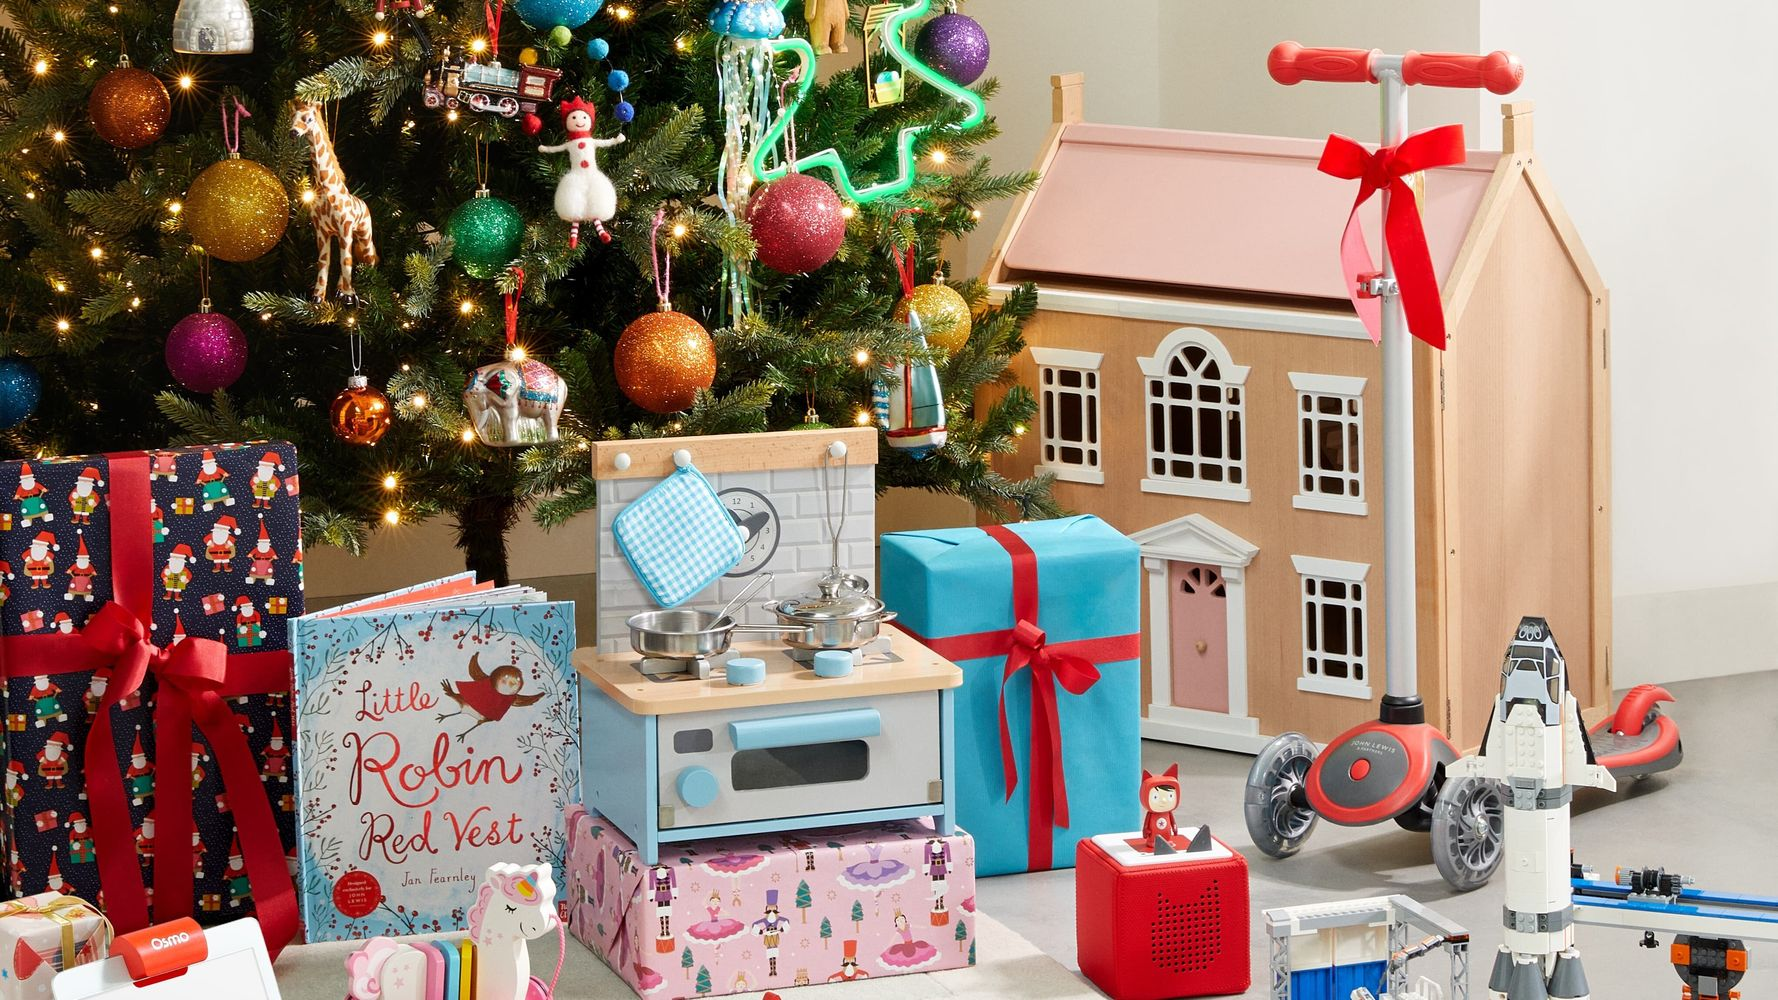 Best Toys For Christmas 2019.Top Toys For Christmas 2019 John Lewis Releases Its Uk